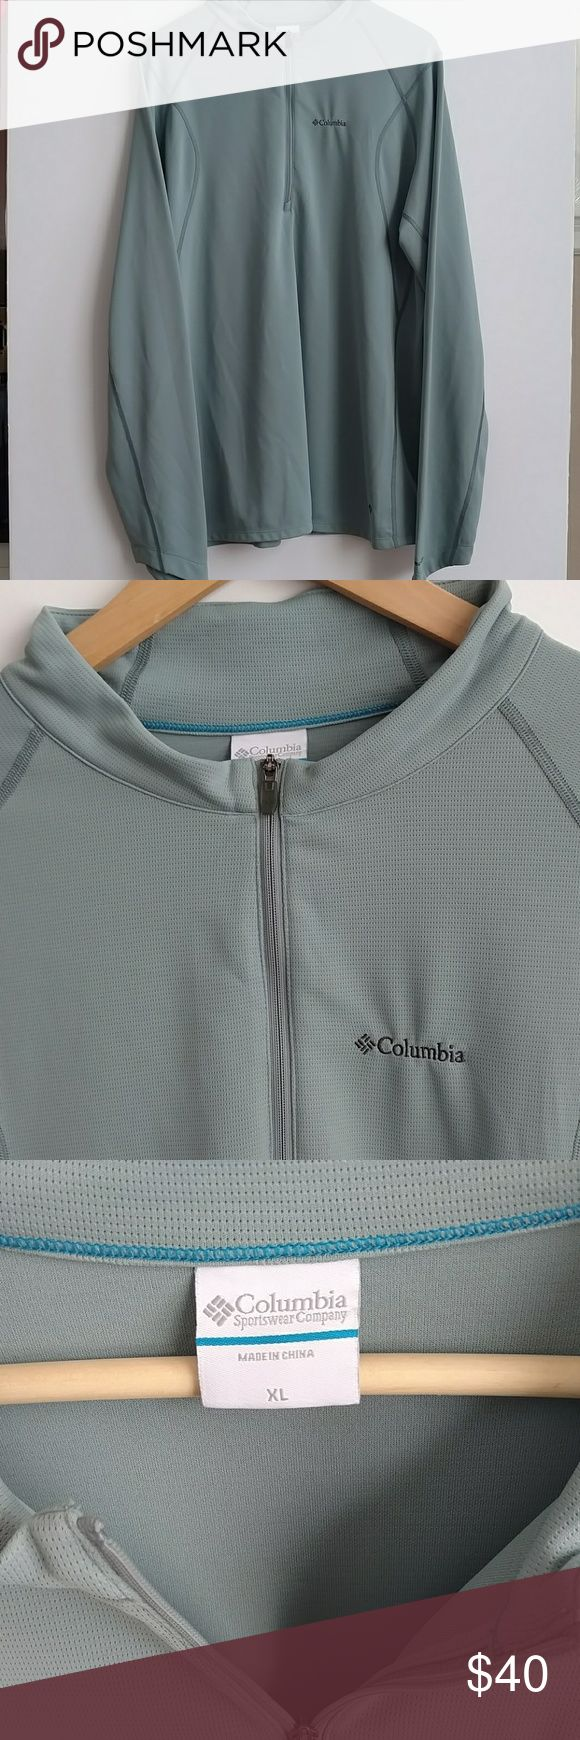 """Columbia Men's XL Gray 3/4 Zip Insect Blocker Top Columbia men's XL gray'ish blue 3/4 zip """"Insect Blocker"""" jacket. Columbia logo on front left and also lower left corner. 100% polyester. This jacket is an """"Insect Blocker"""" jacket, meaning that it repels insects & mosquitoes. In great shape!! Lay flat measures: Chest: 49"""" Length: 29.5"""" Sleeves: 28.75"""" Columbia Shirts Sweatshirts & Hoodies"""